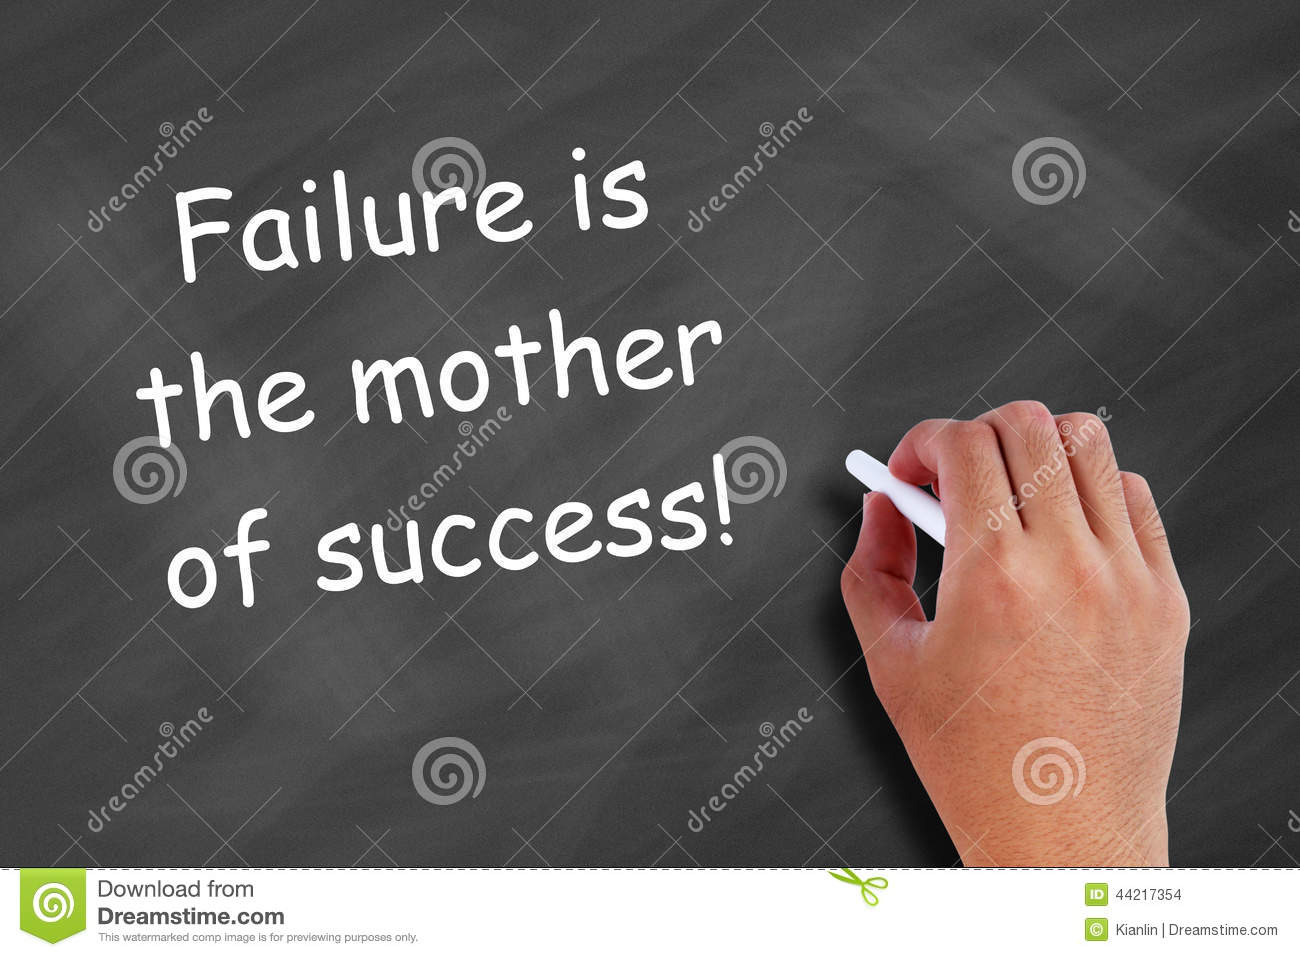 Essay on failure is the mother of success